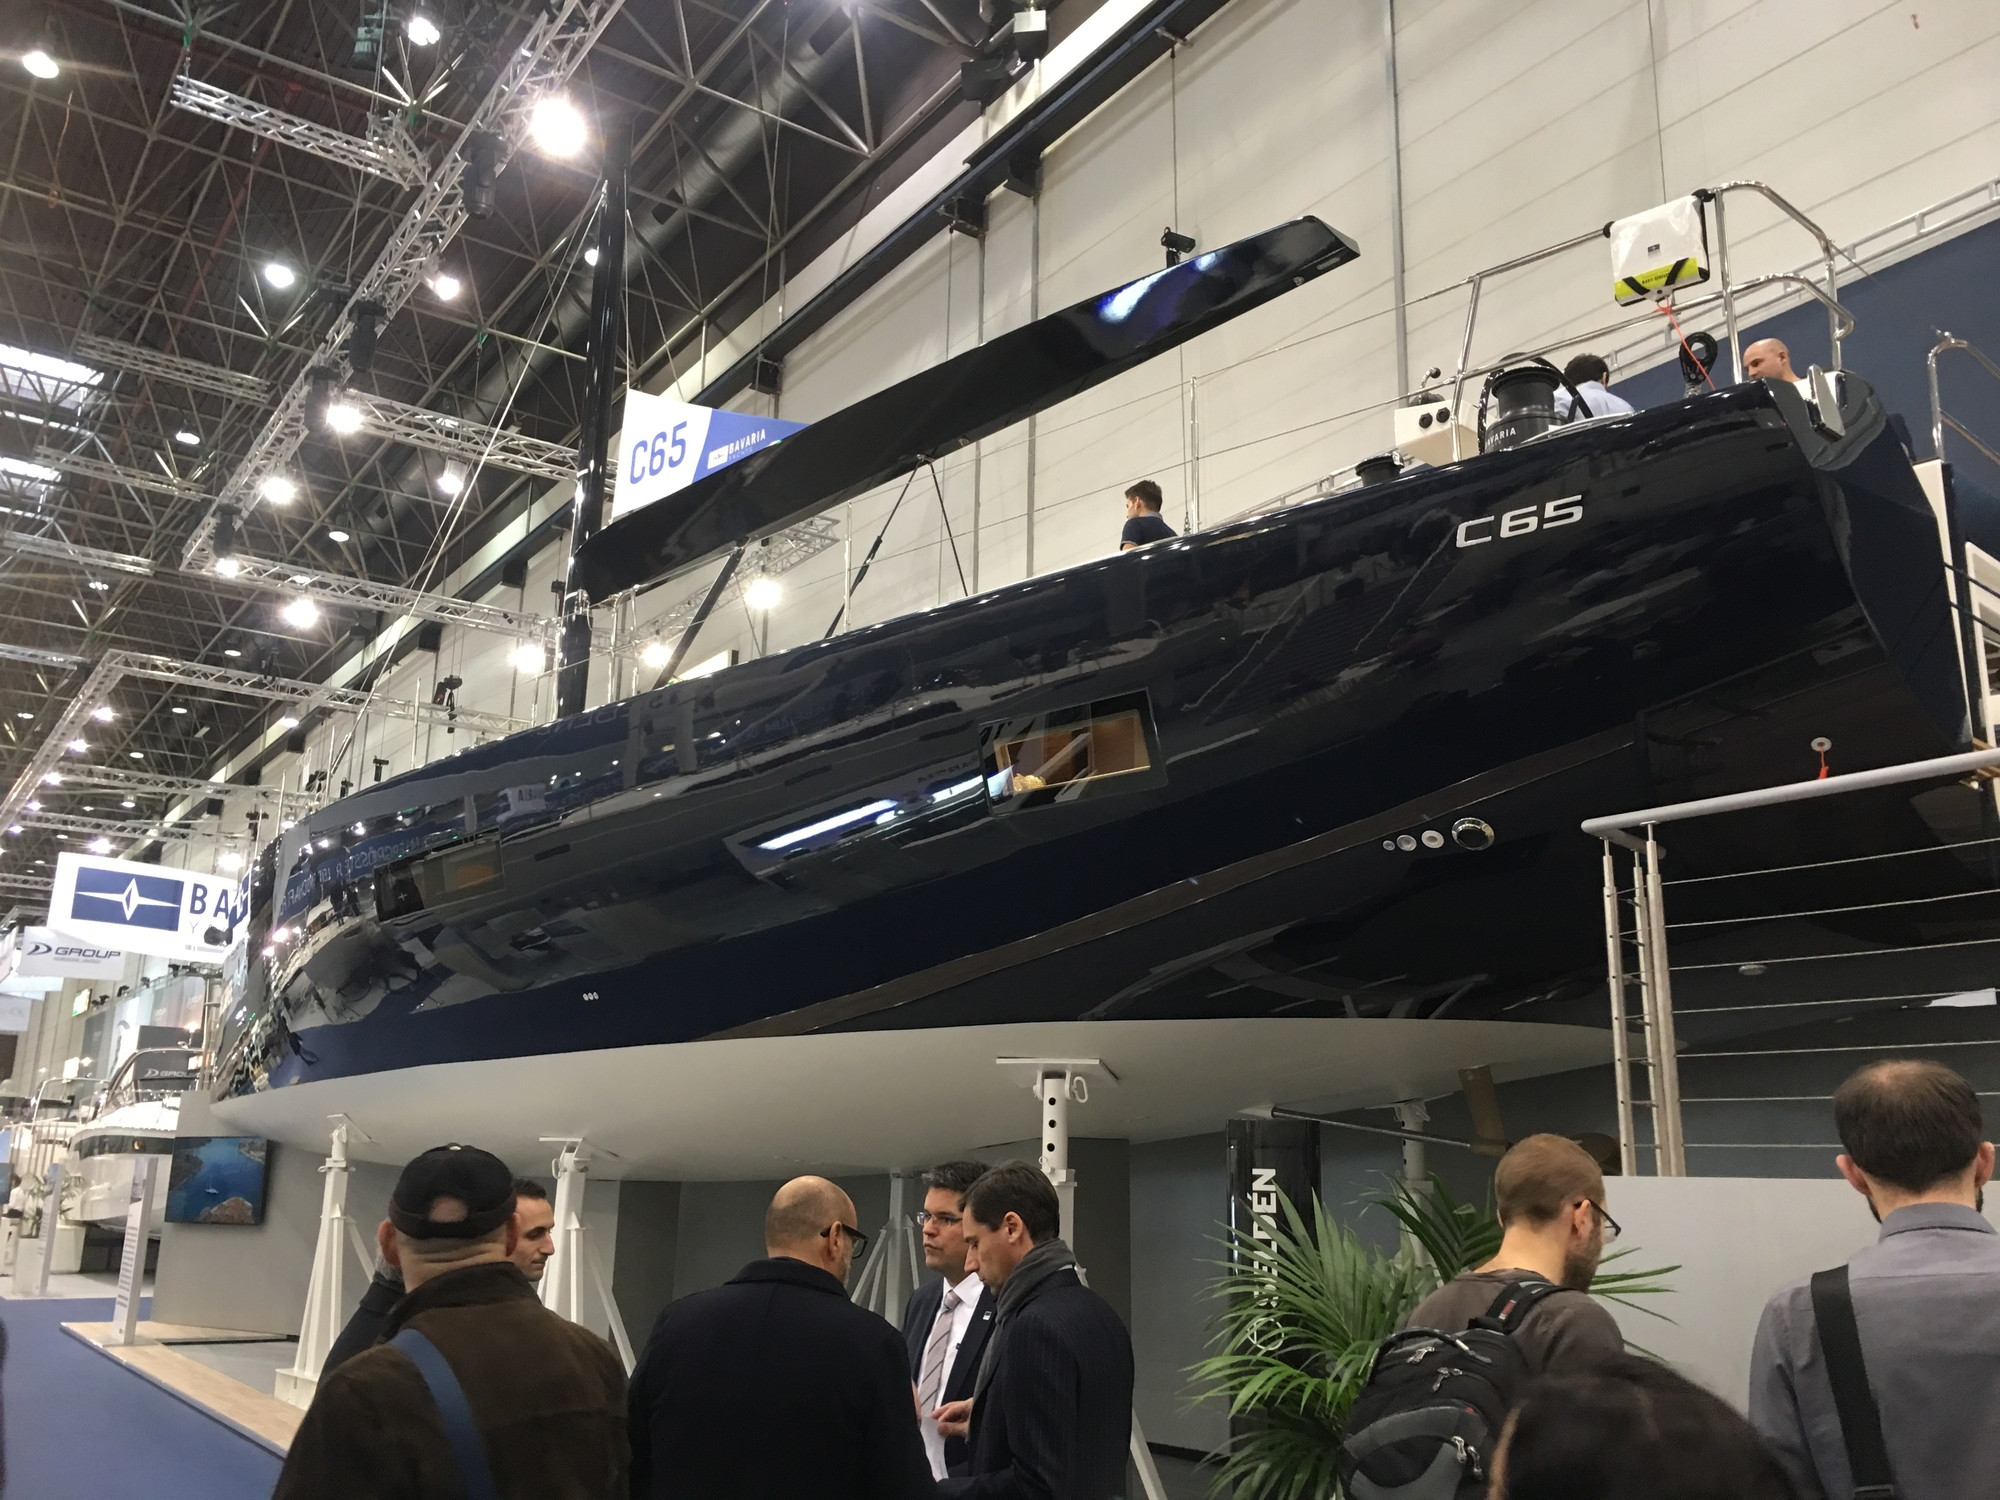 Brand new Bavaria C65 launched